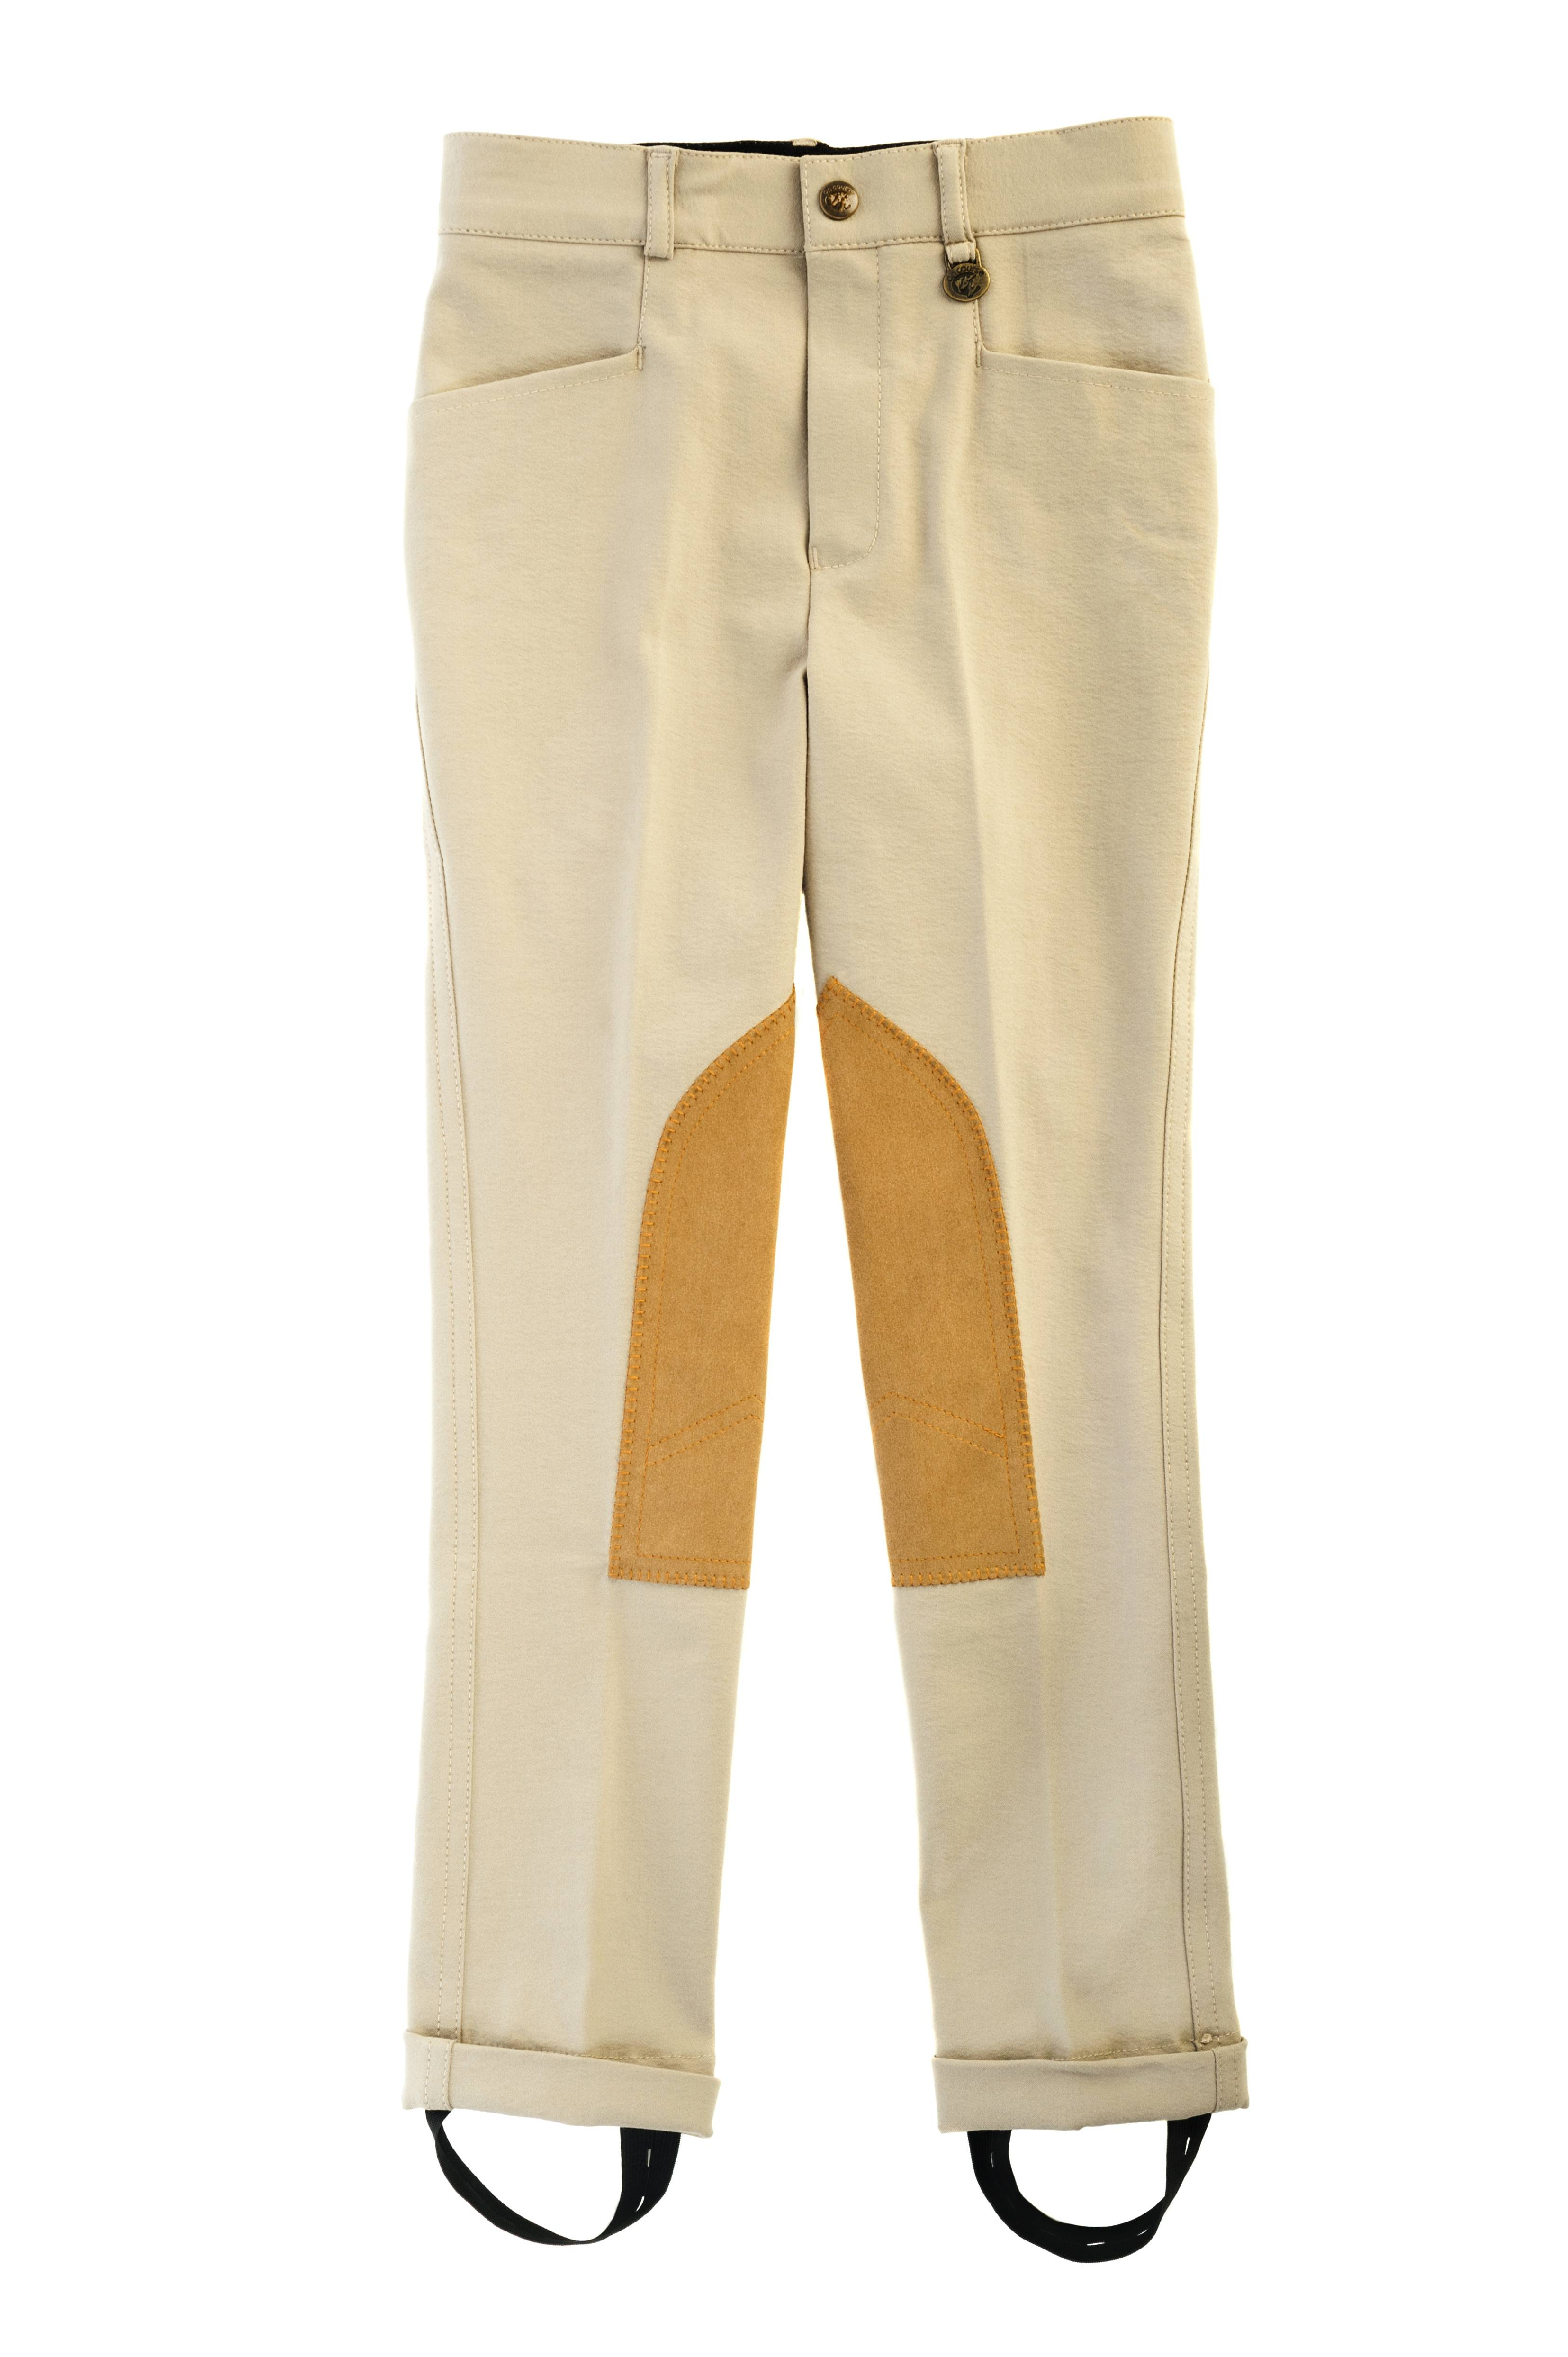 Dublin Pytchley Adjustable Waist Jodhpurs - Kids